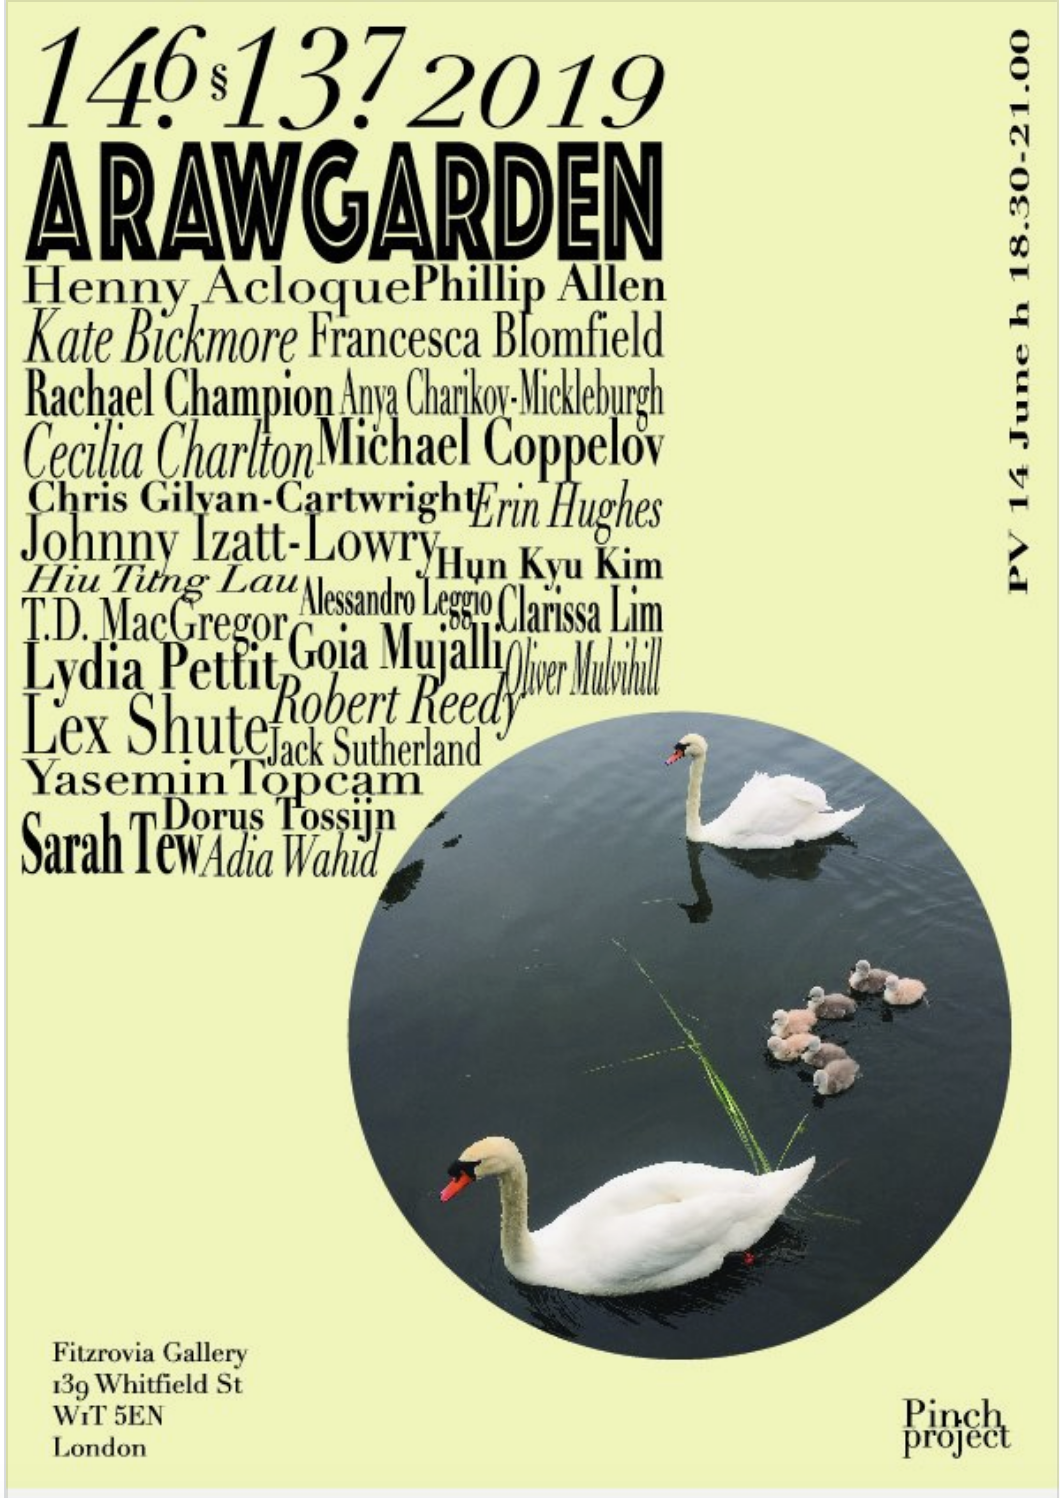 A RAW Garden - The Fitzrovia Gallery